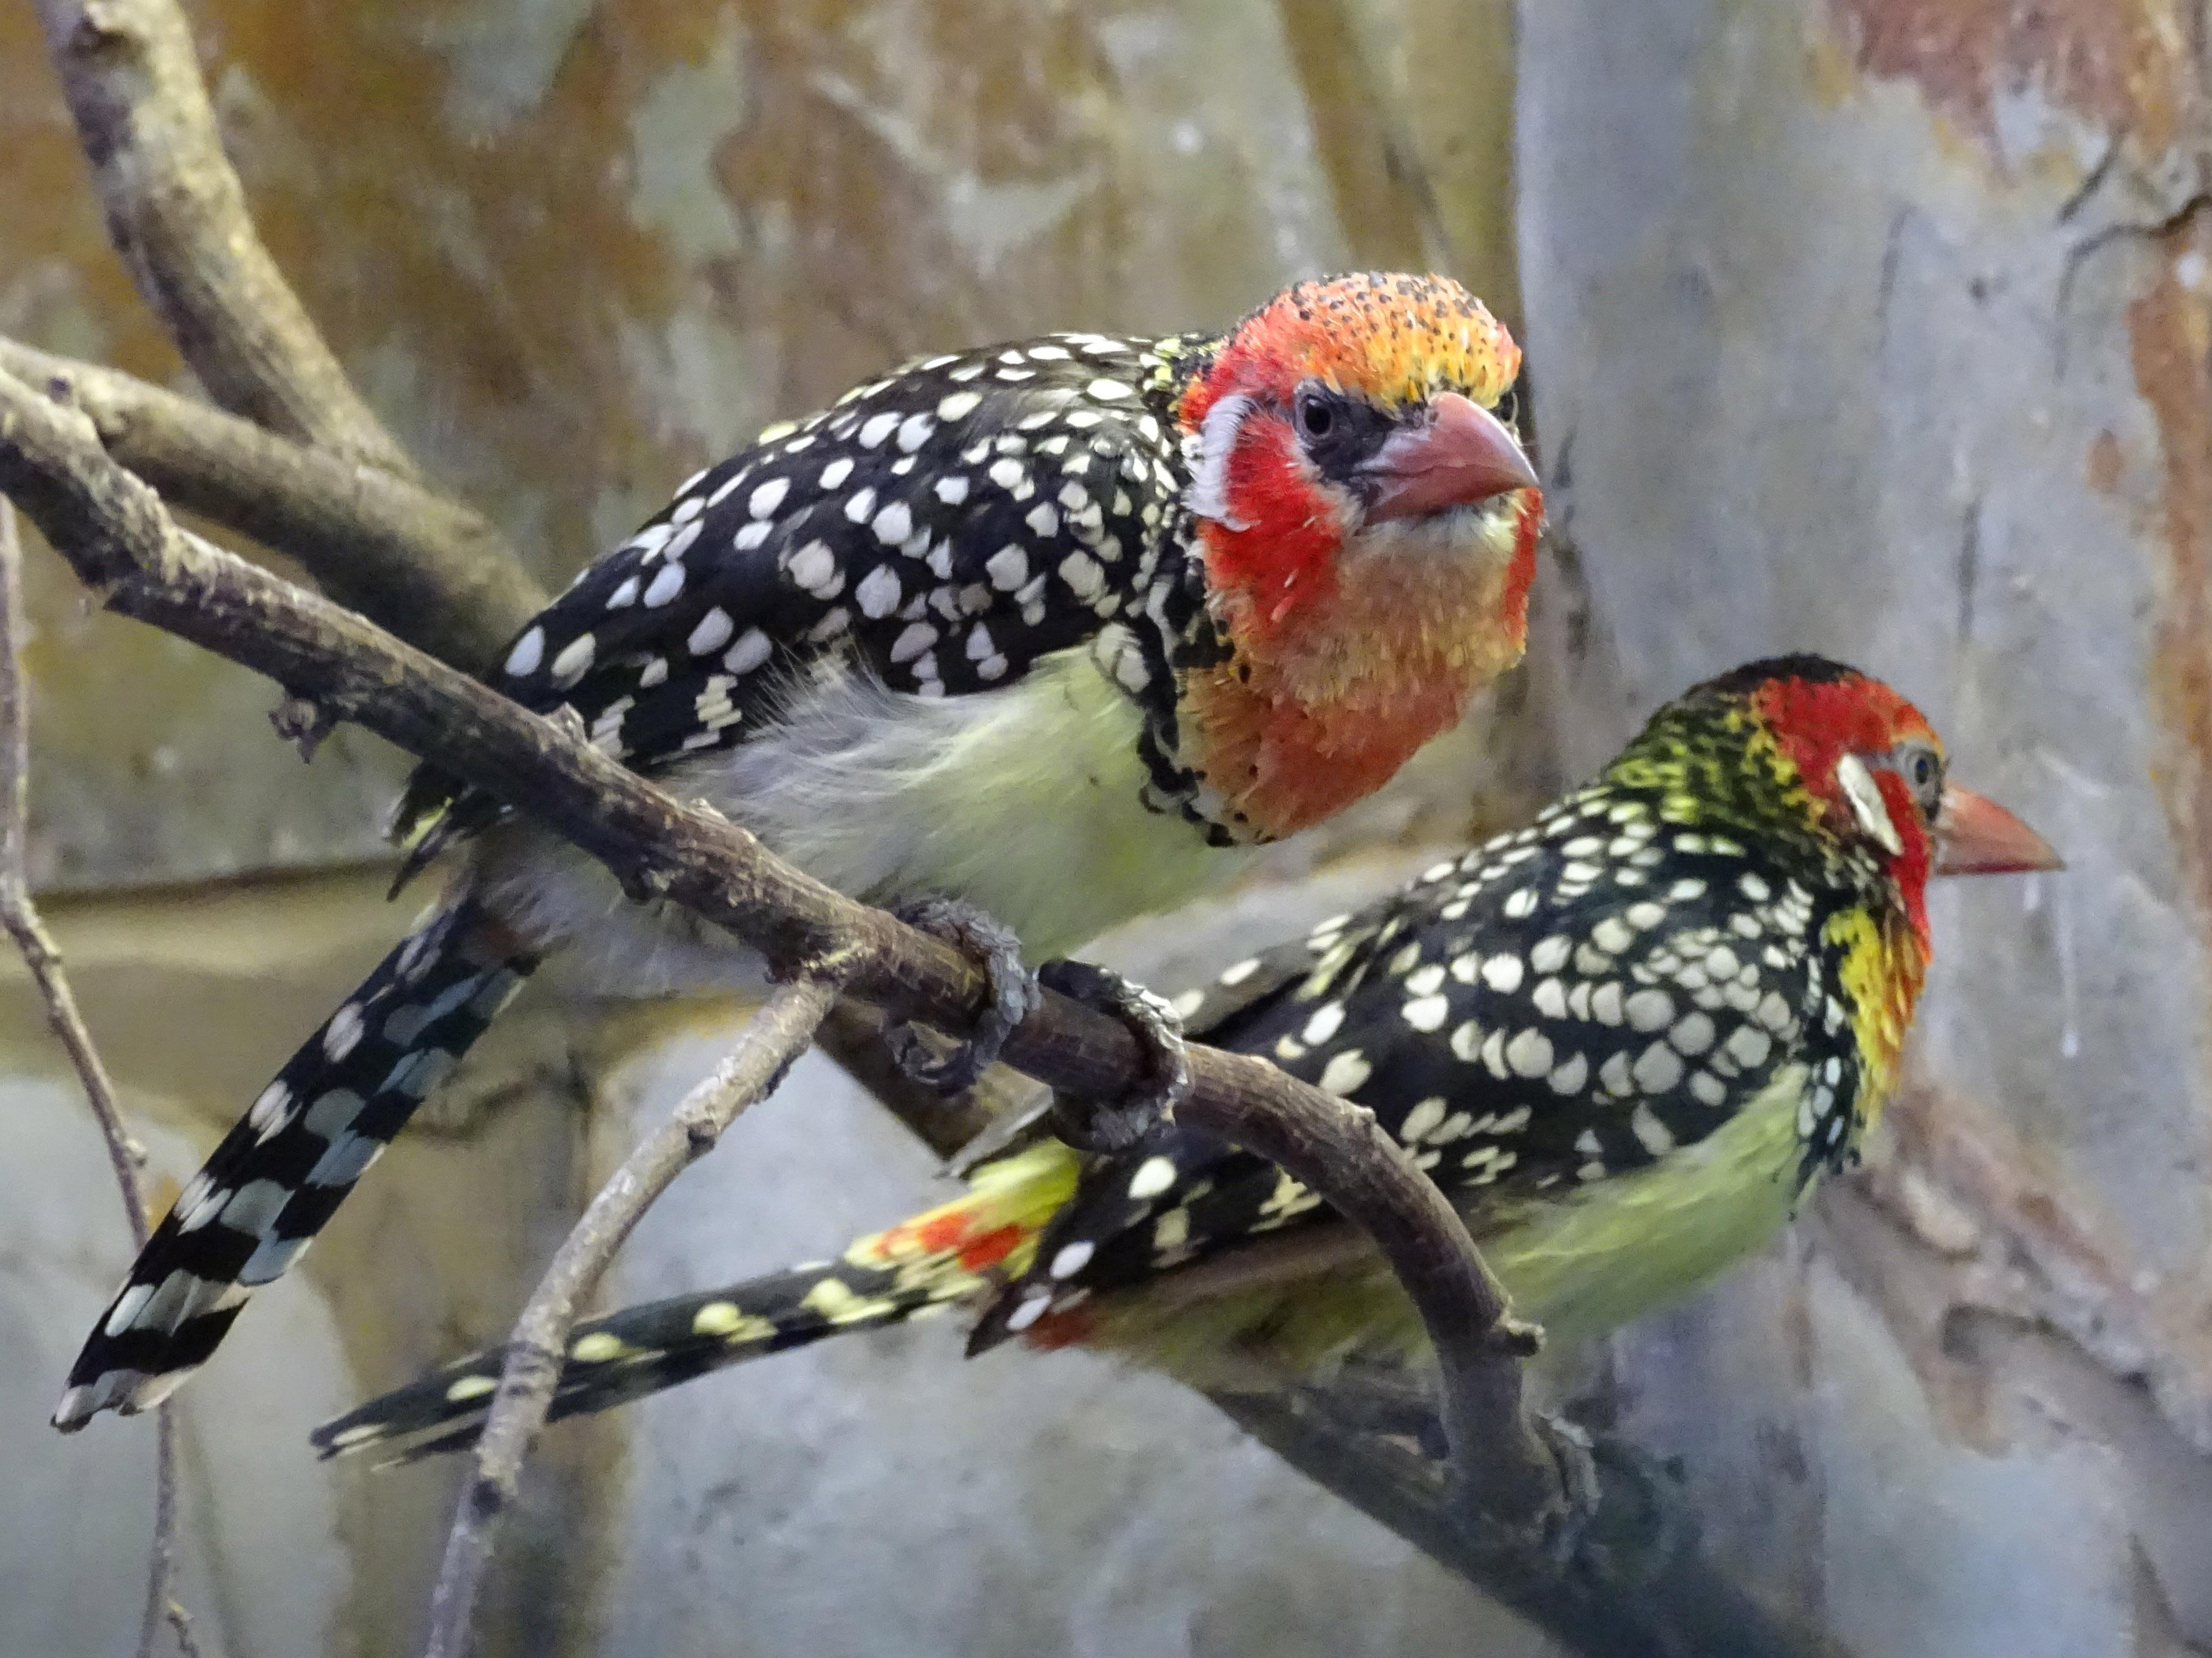 Red-and-yellow barbets at Birdworld in England. (SurreyJohn / Wikimedia Commons)